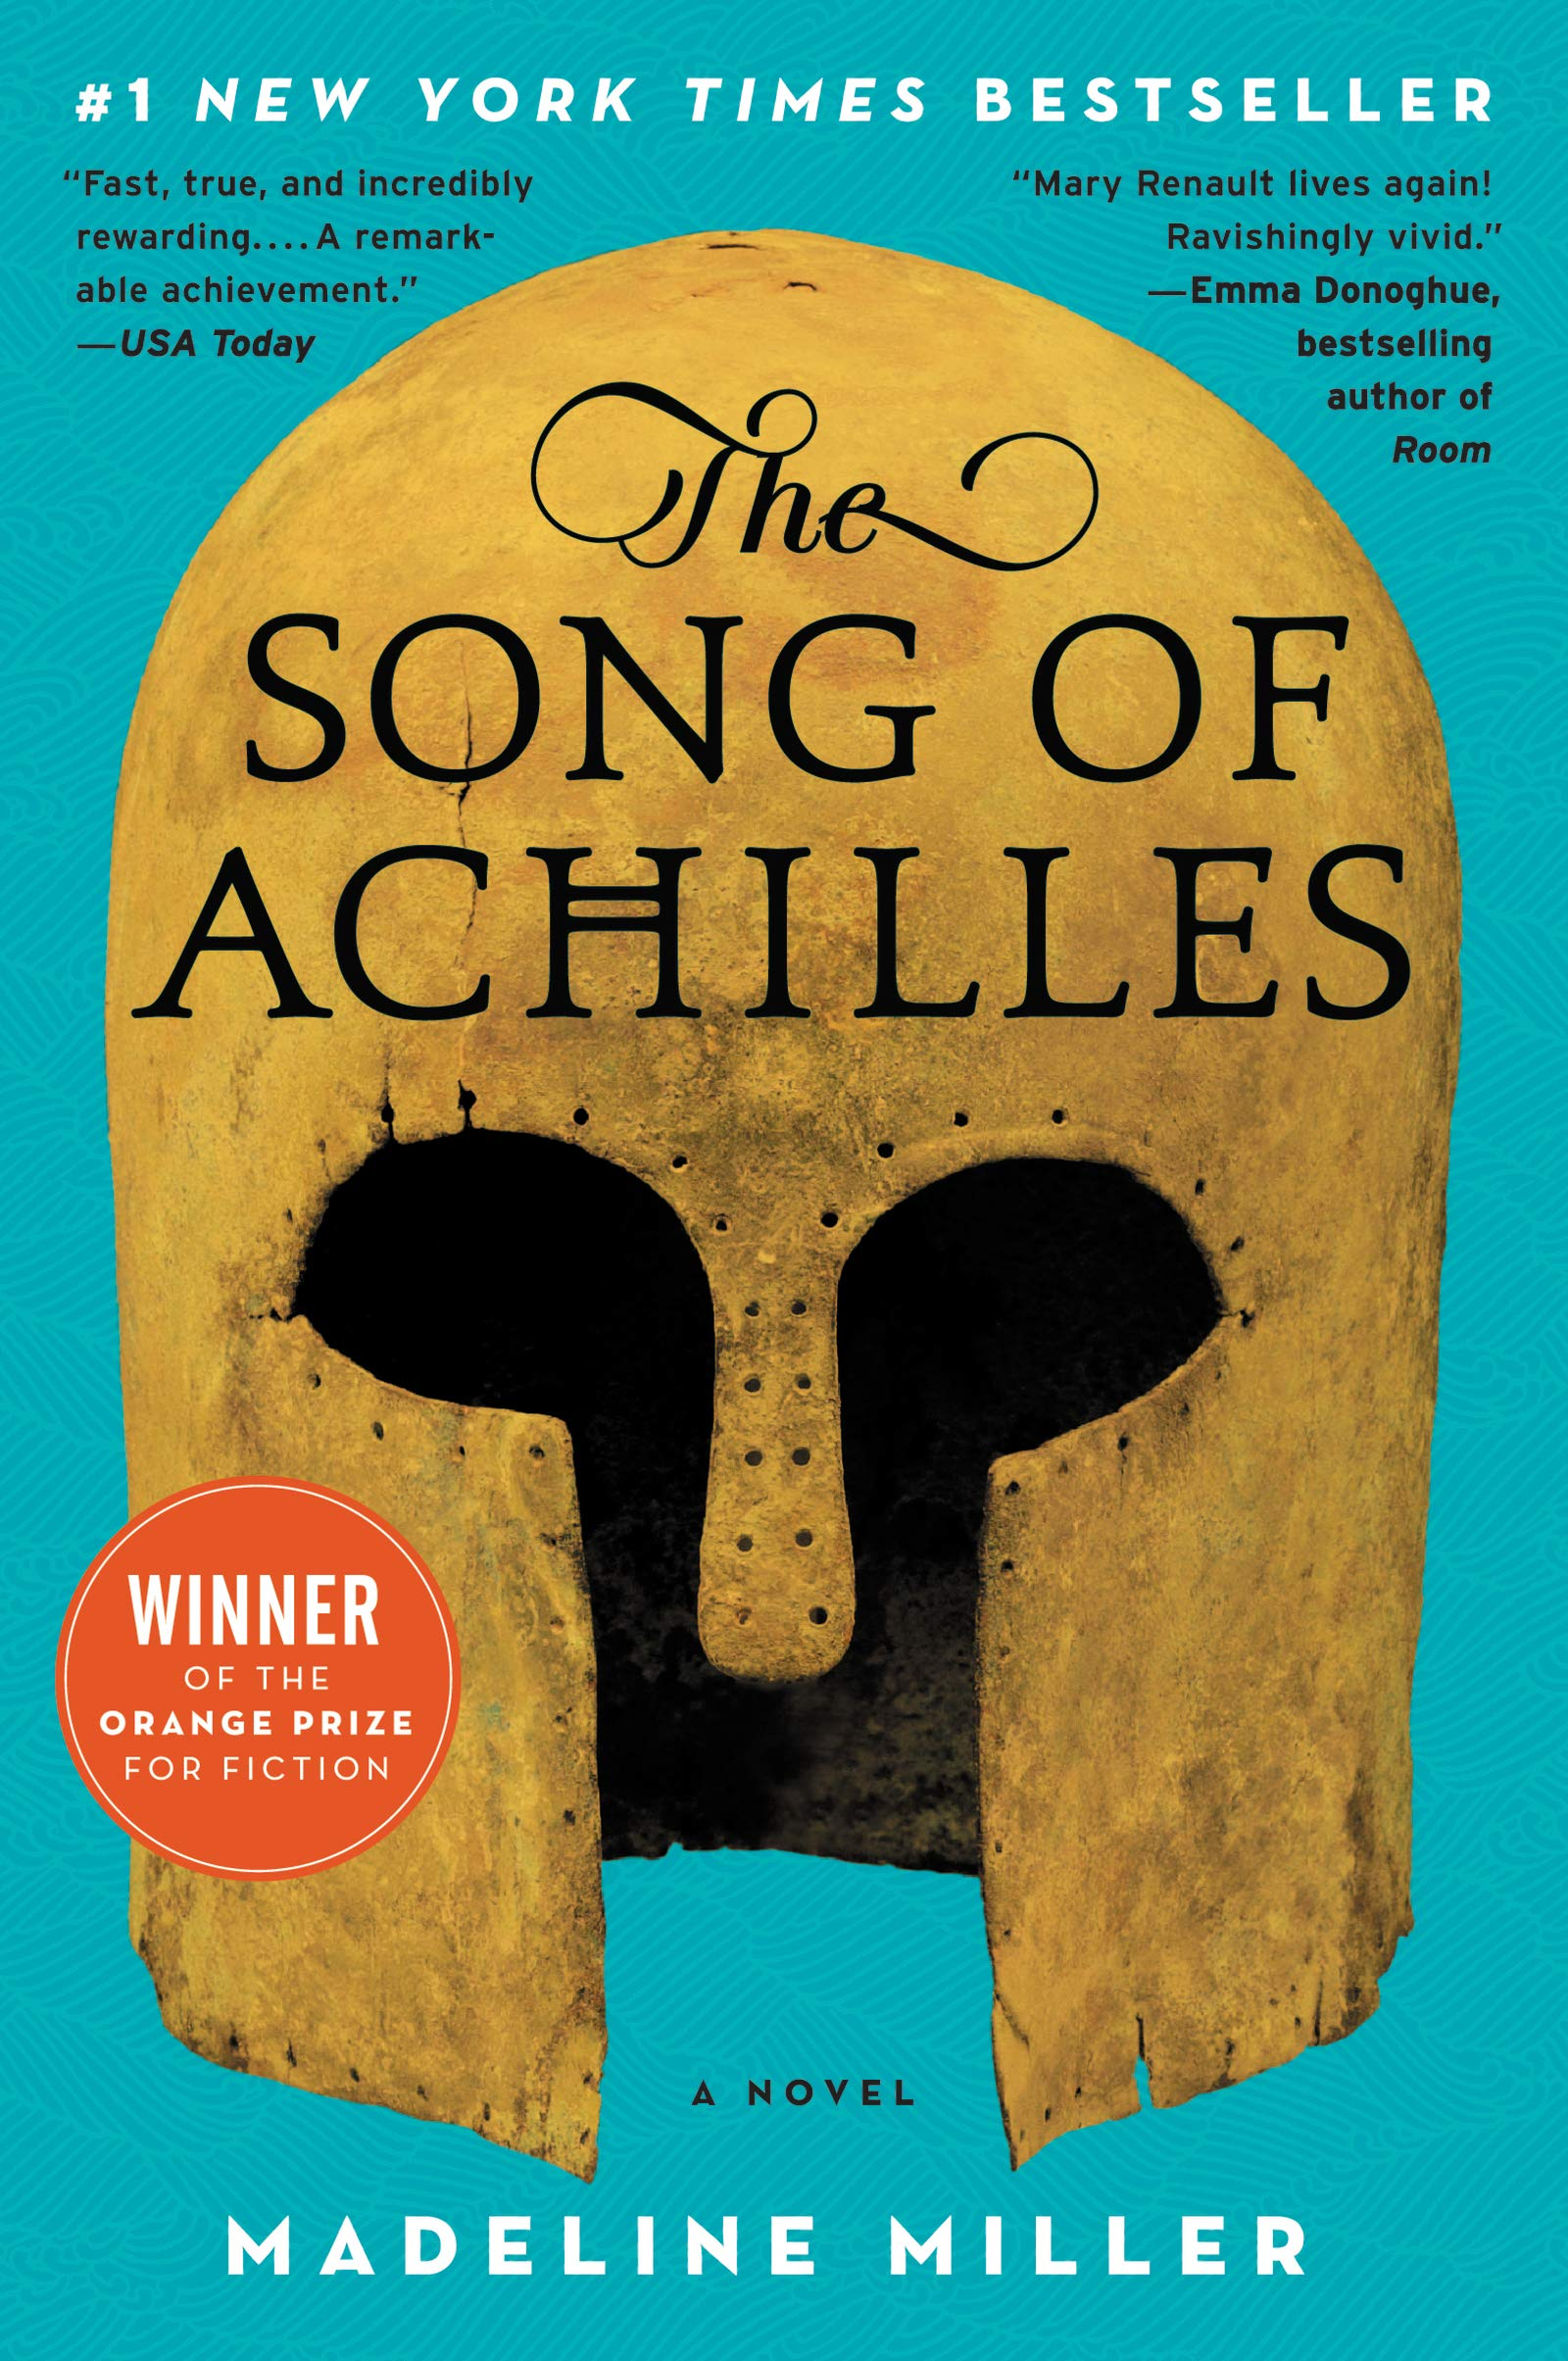 Blue cover with a golden Grecian helmet emblazoned with the book title.